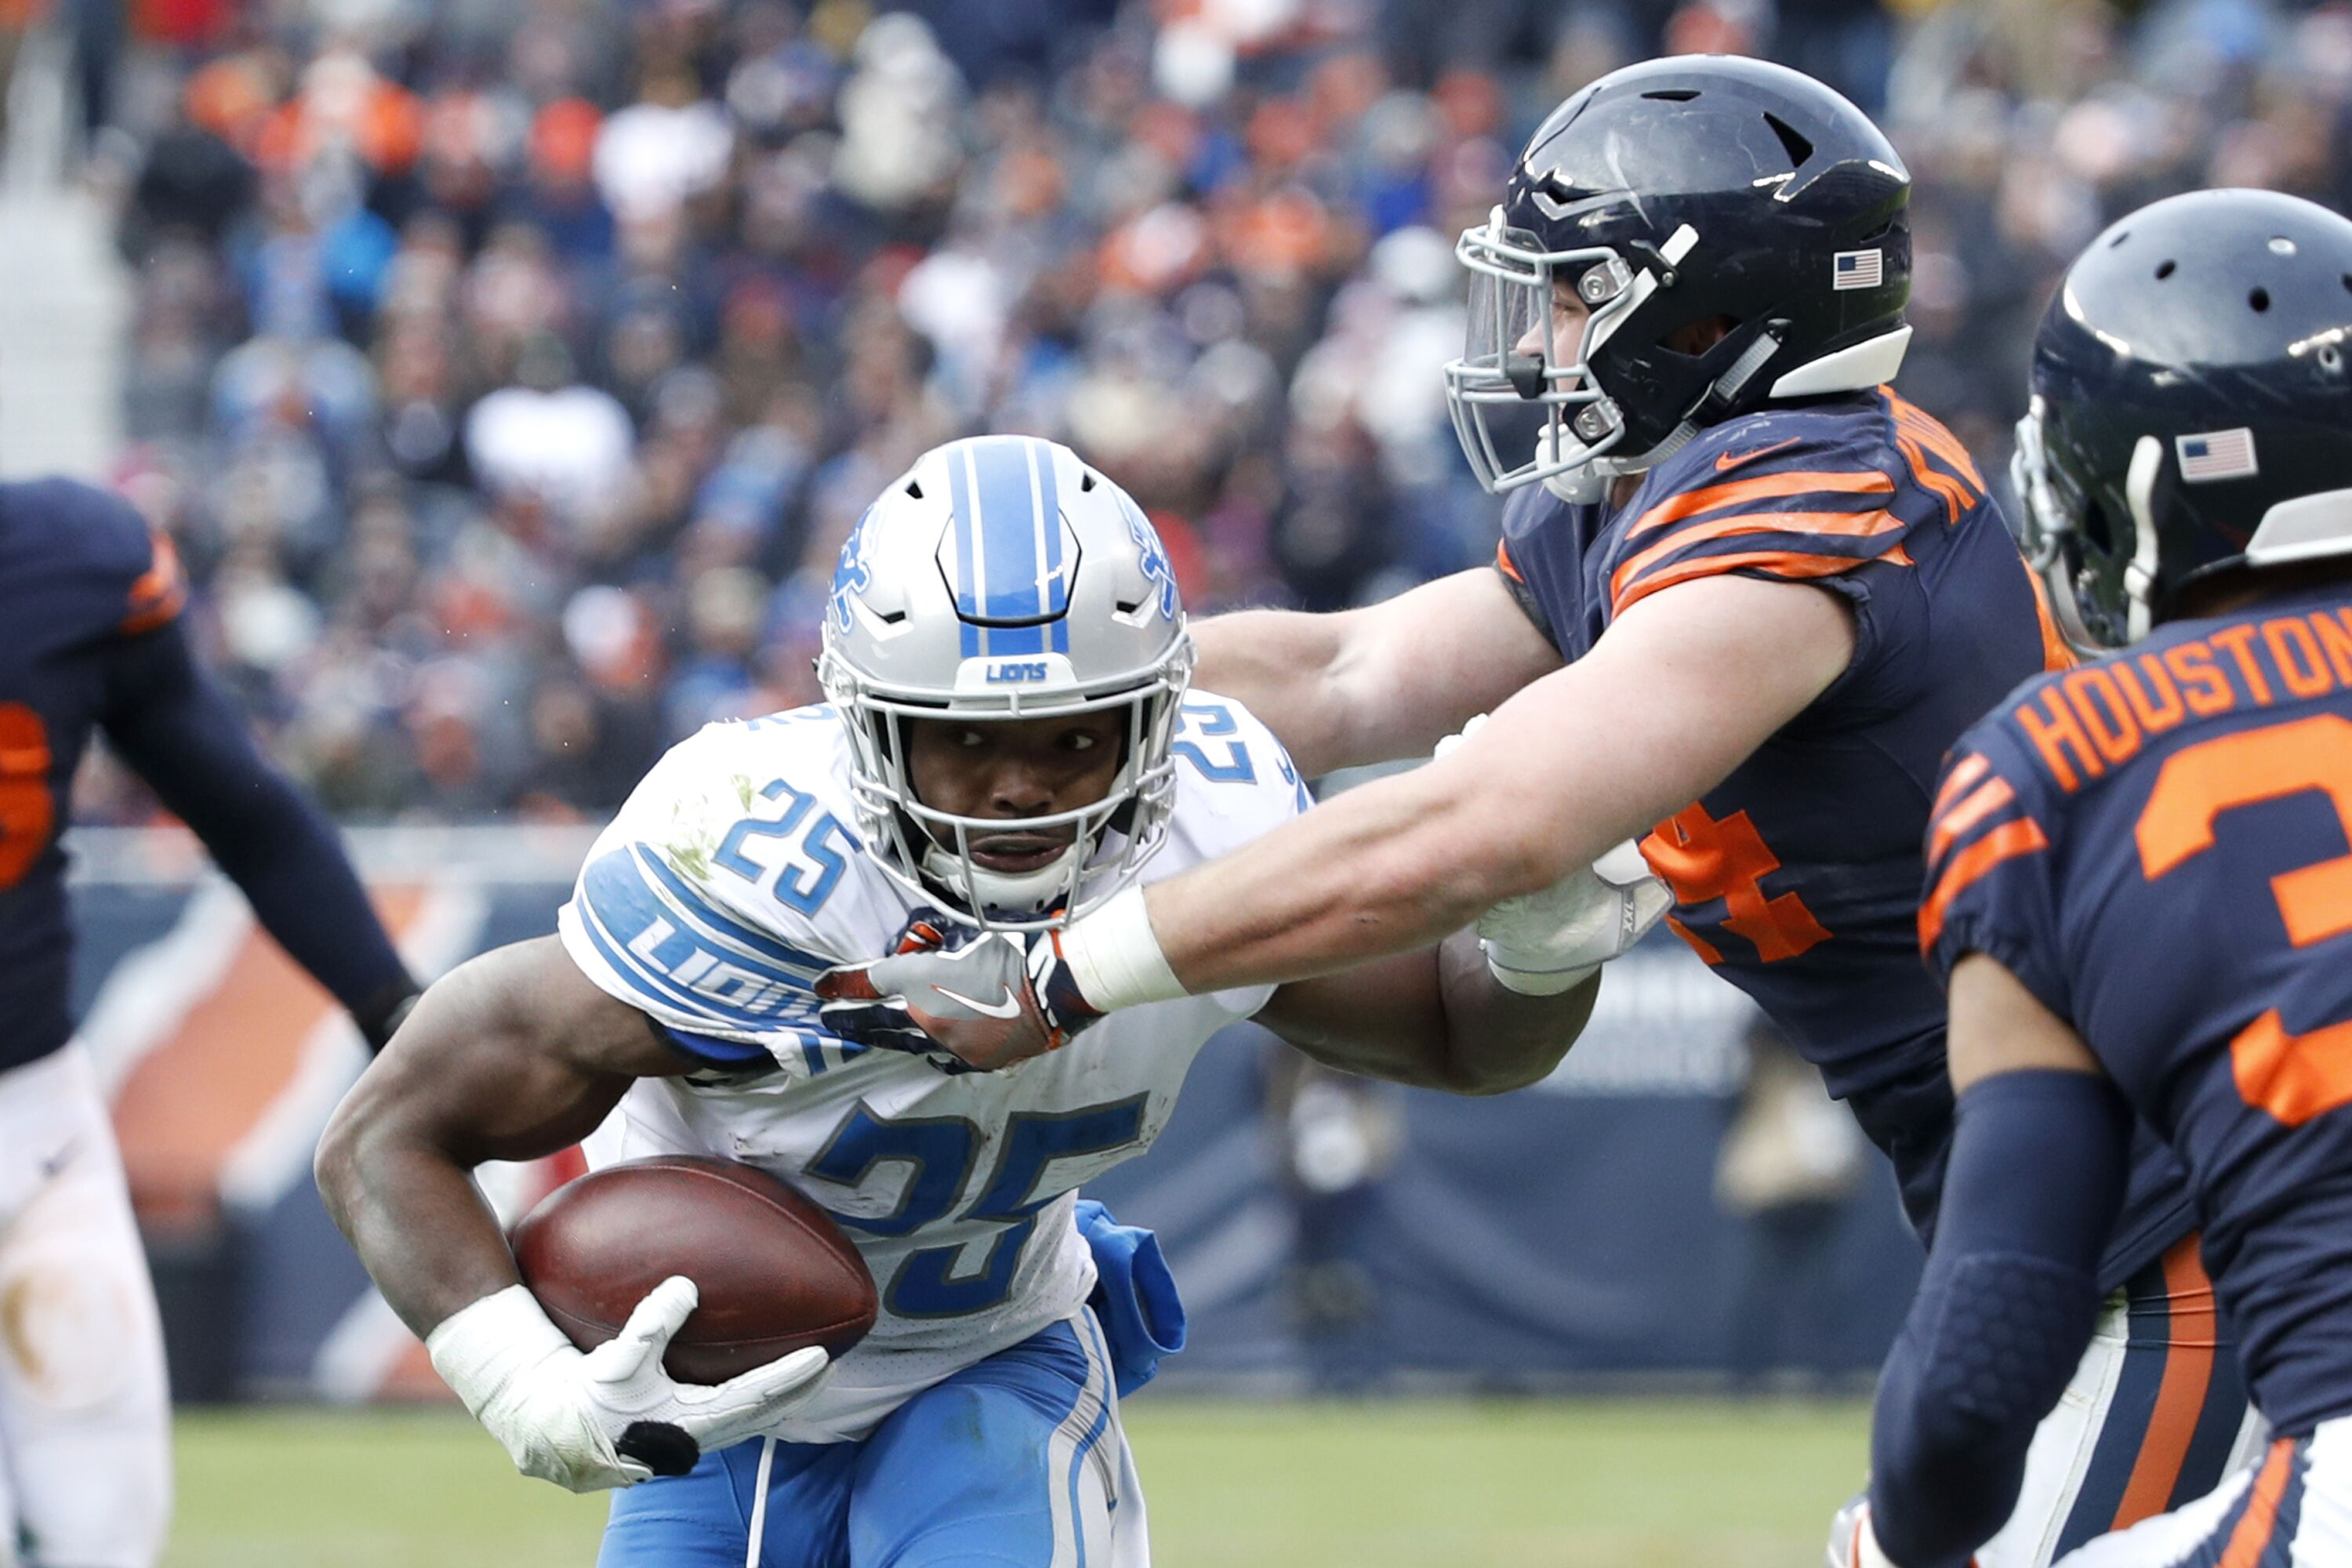 876349064-detroit-lions-v-chicago-bears.jpg